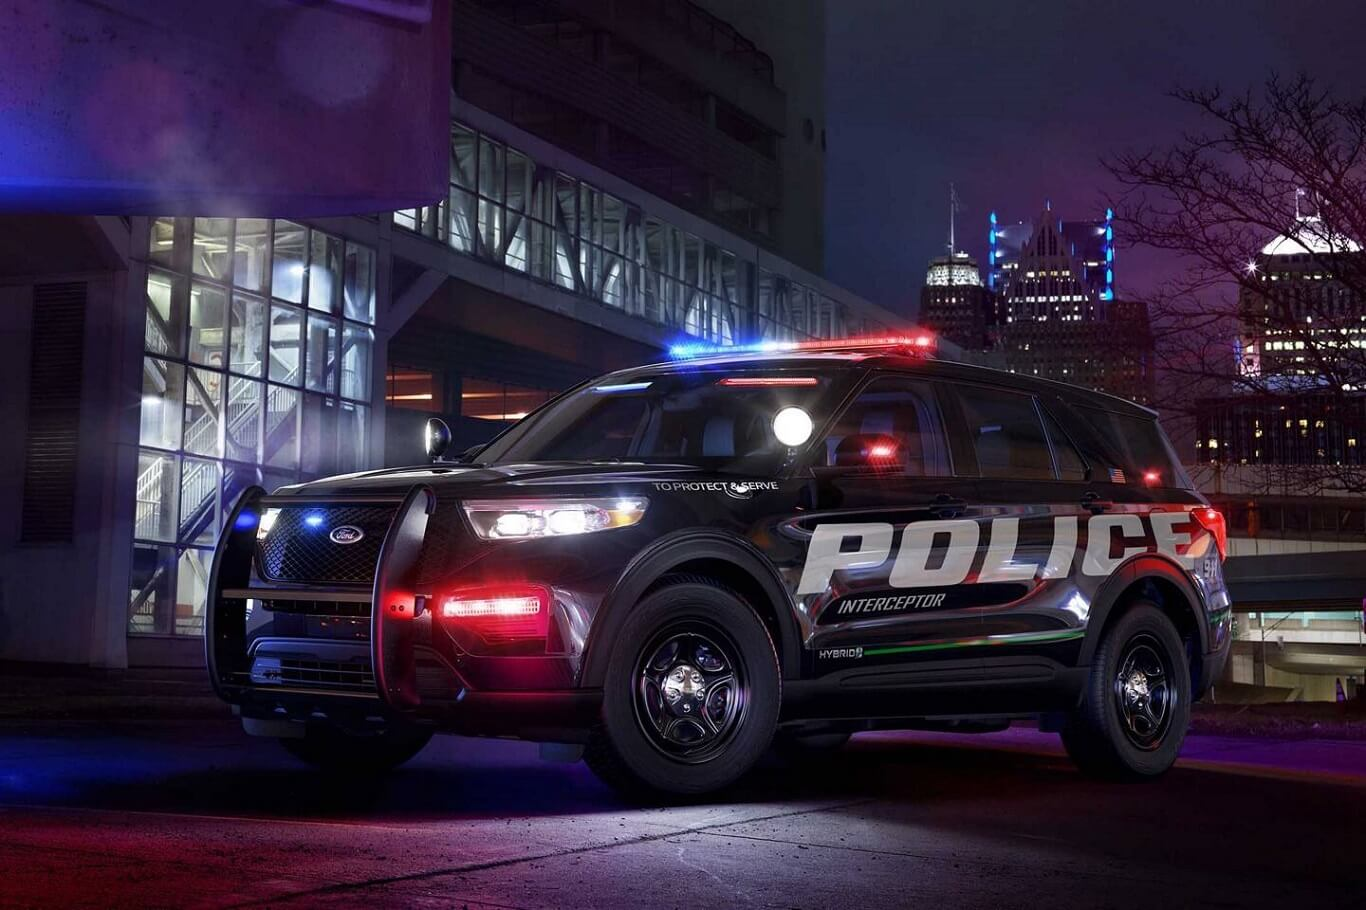 Ford Explorer remains cop's favorite as it is the fastest Police car sold today